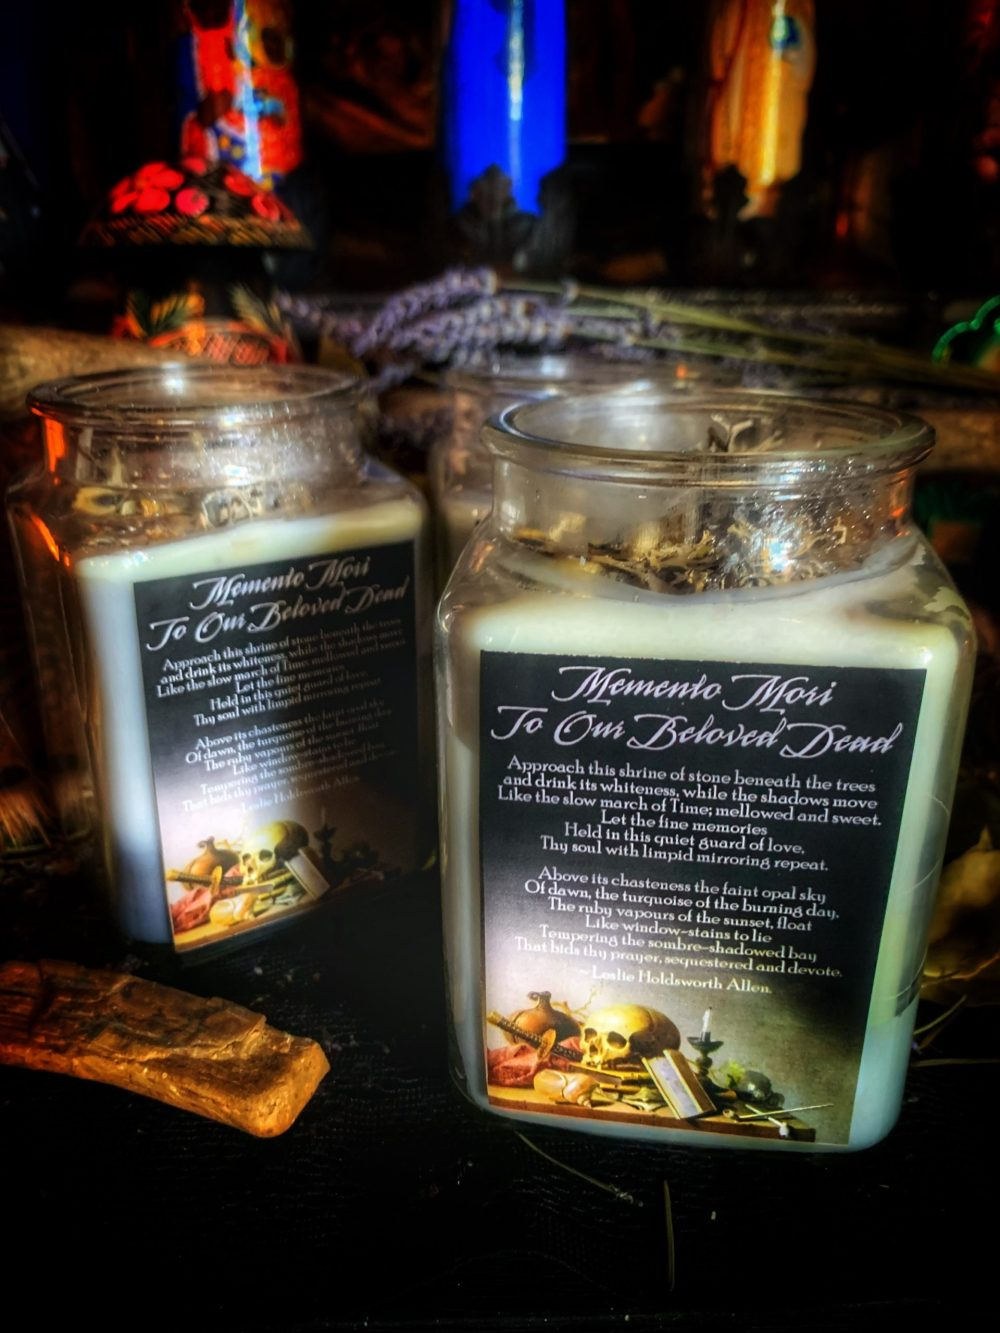 To Our Beloved Dead Memento Mori Candle